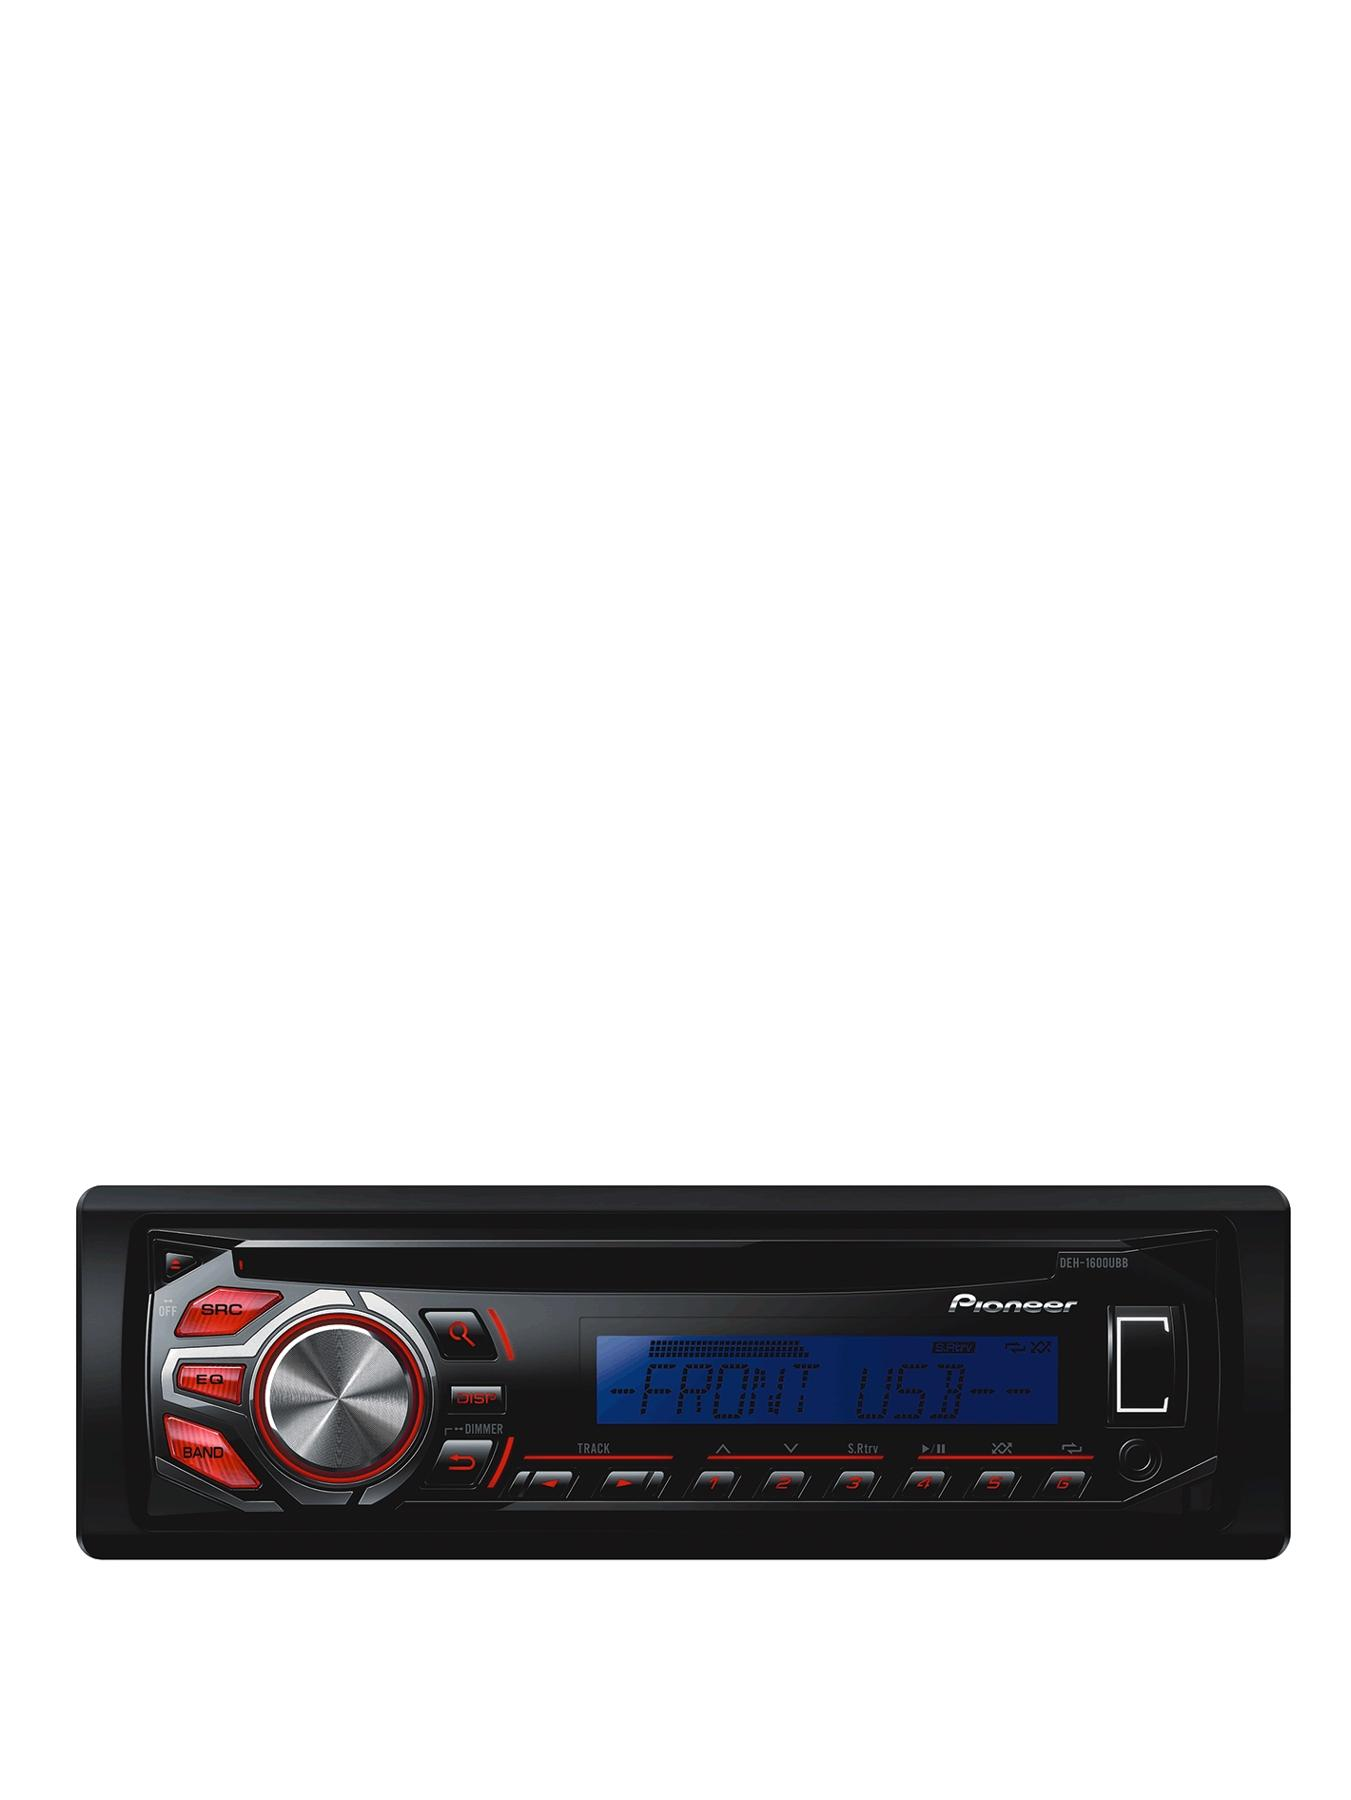 DEH-1600UBB CD Tuner MP3 USB Blue and Red Display